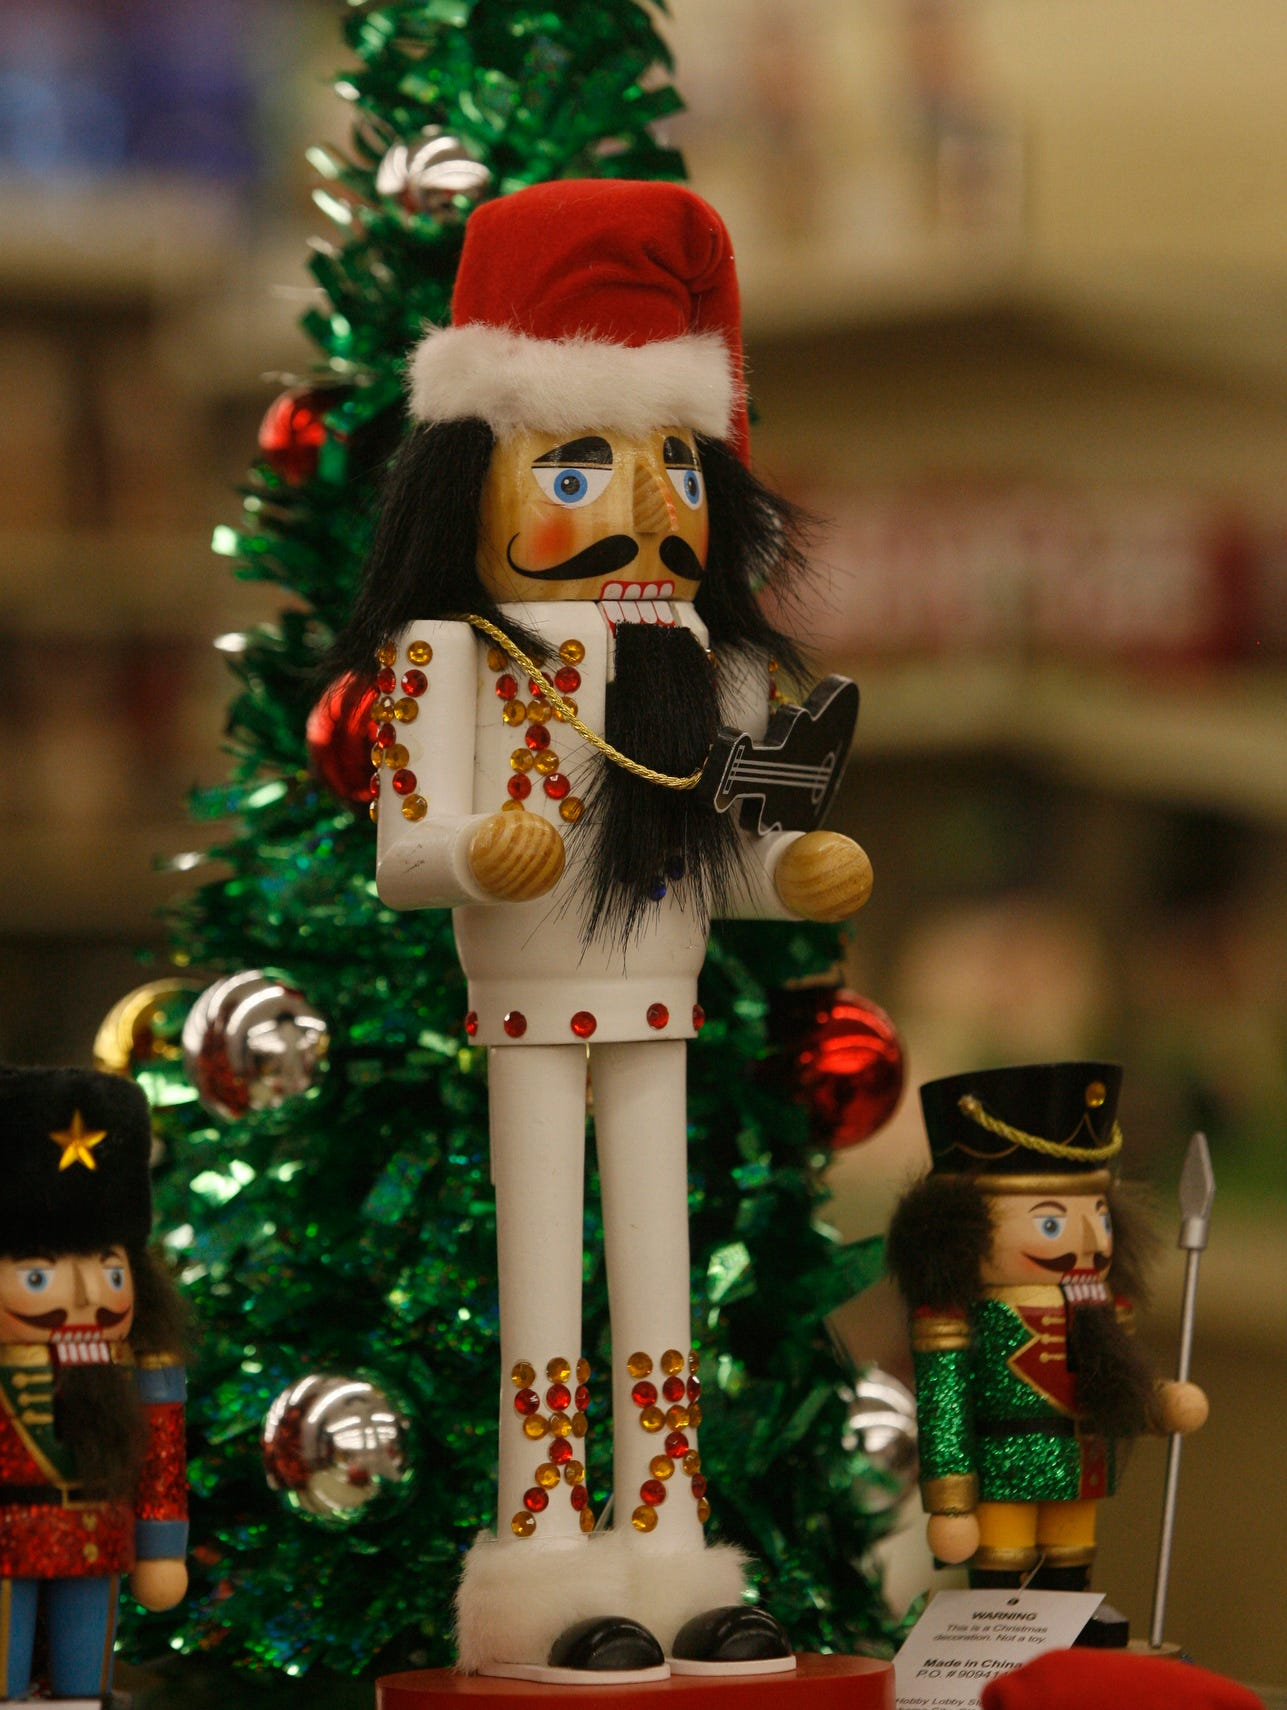 Hobby Lobby Christmas Eve Hours 2021 No Jewish Items At Hobby Lobby Bias Or Business Call